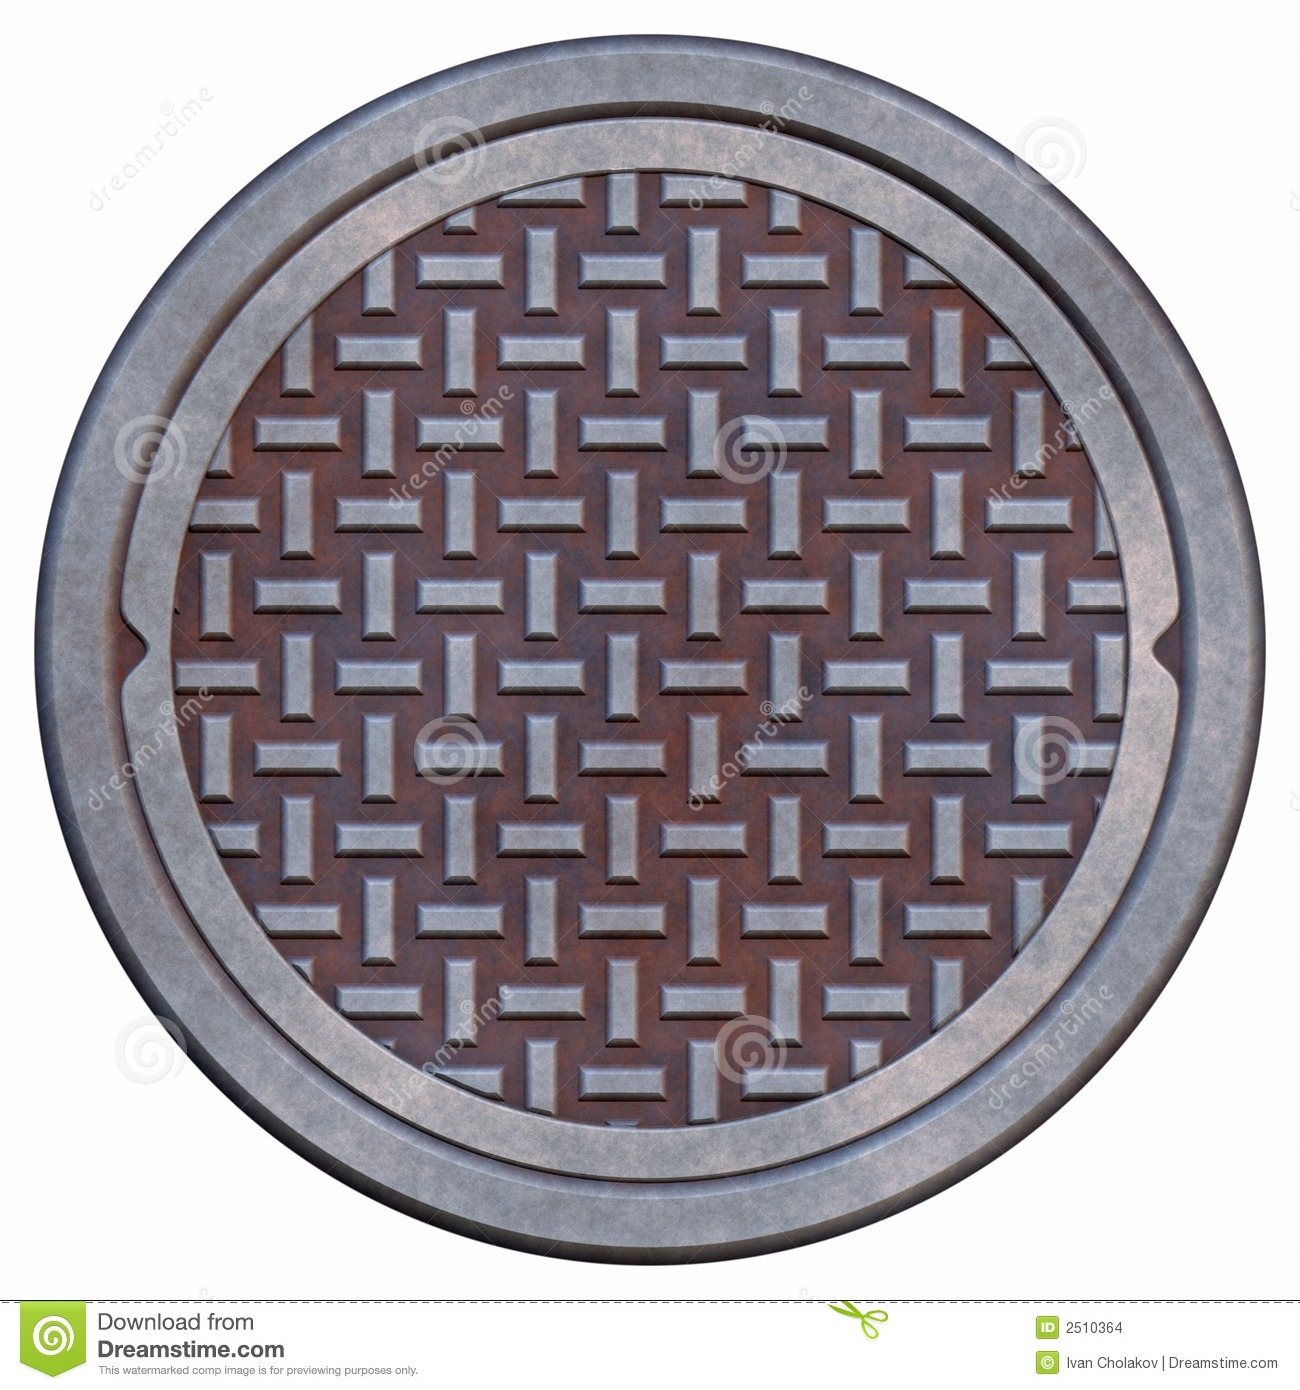 Rusty Manhole Cover Stock Images - Image: 2510364